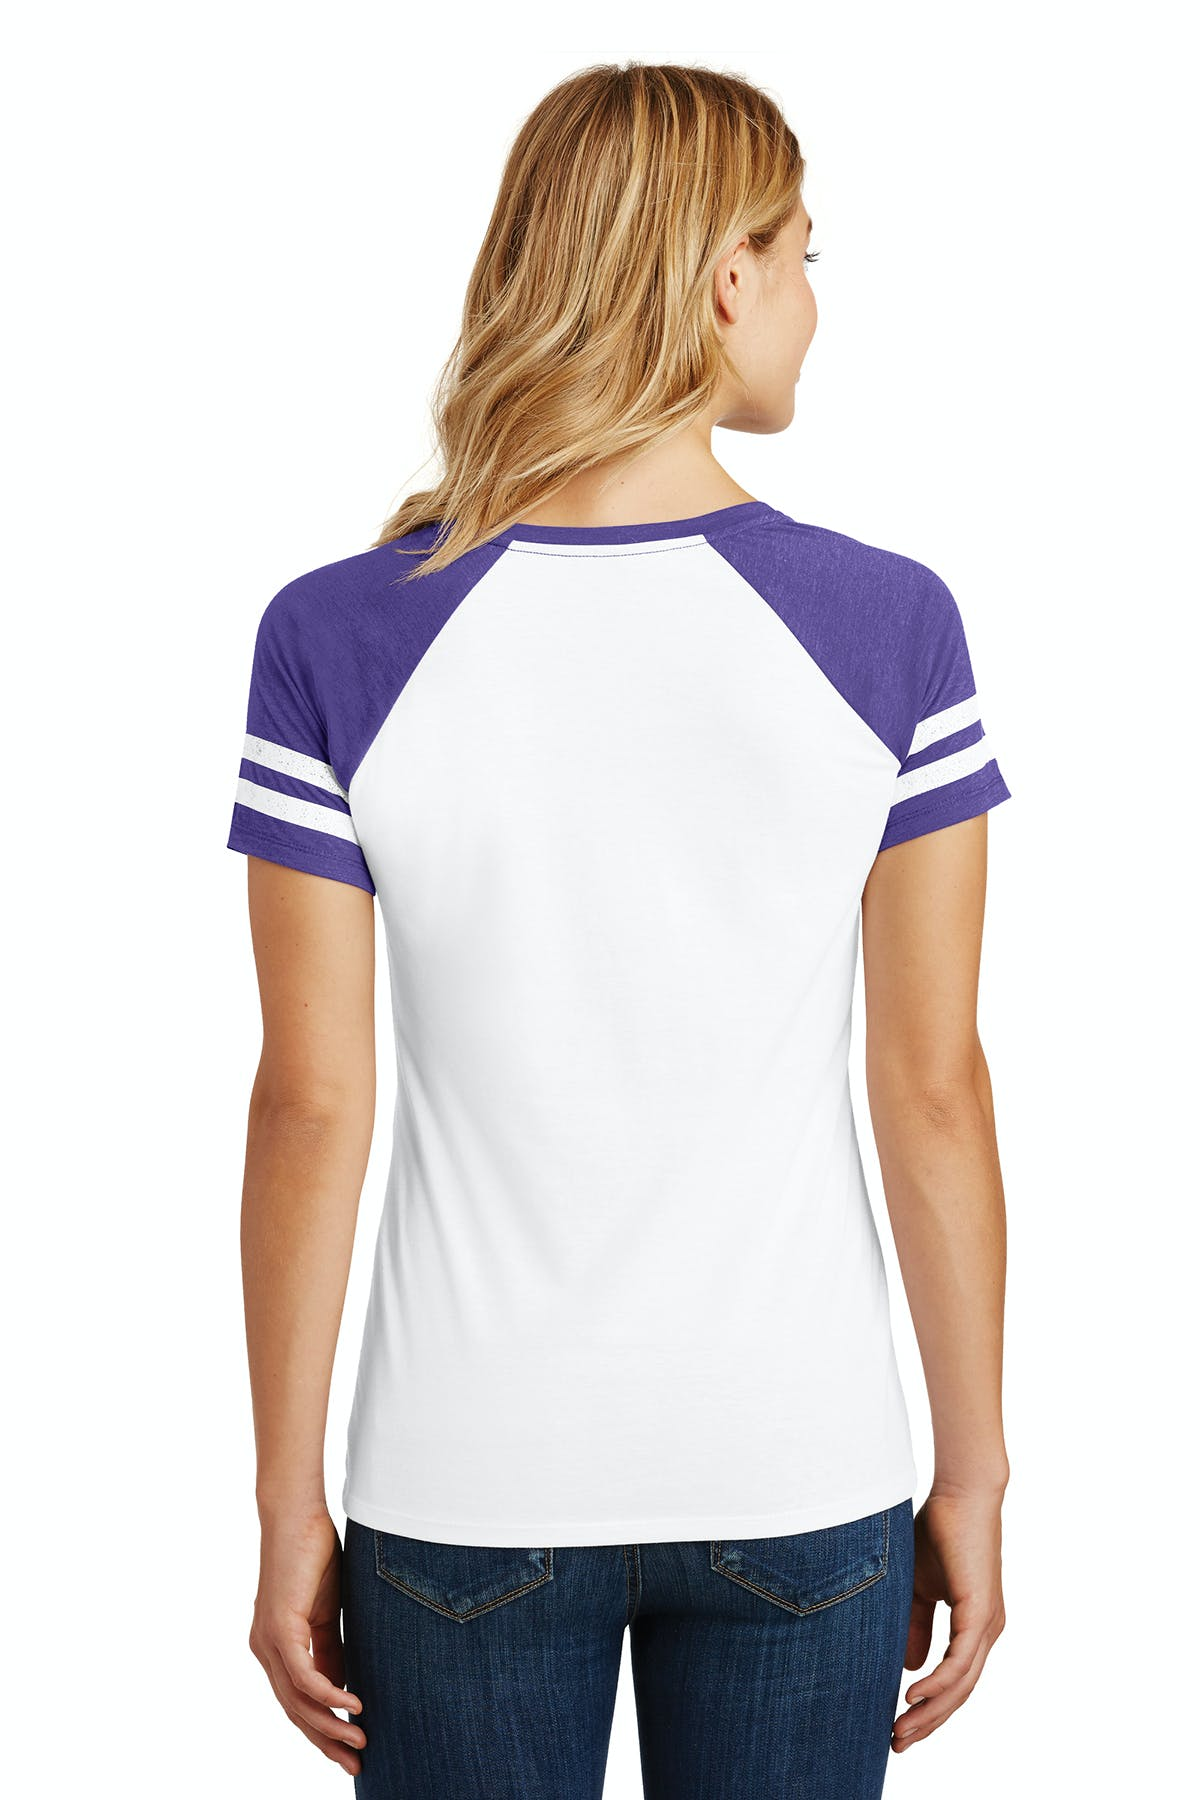 District Made® Ladies Game V-Neck Tee - sold by PRINT CITY GRAPHICS, INC